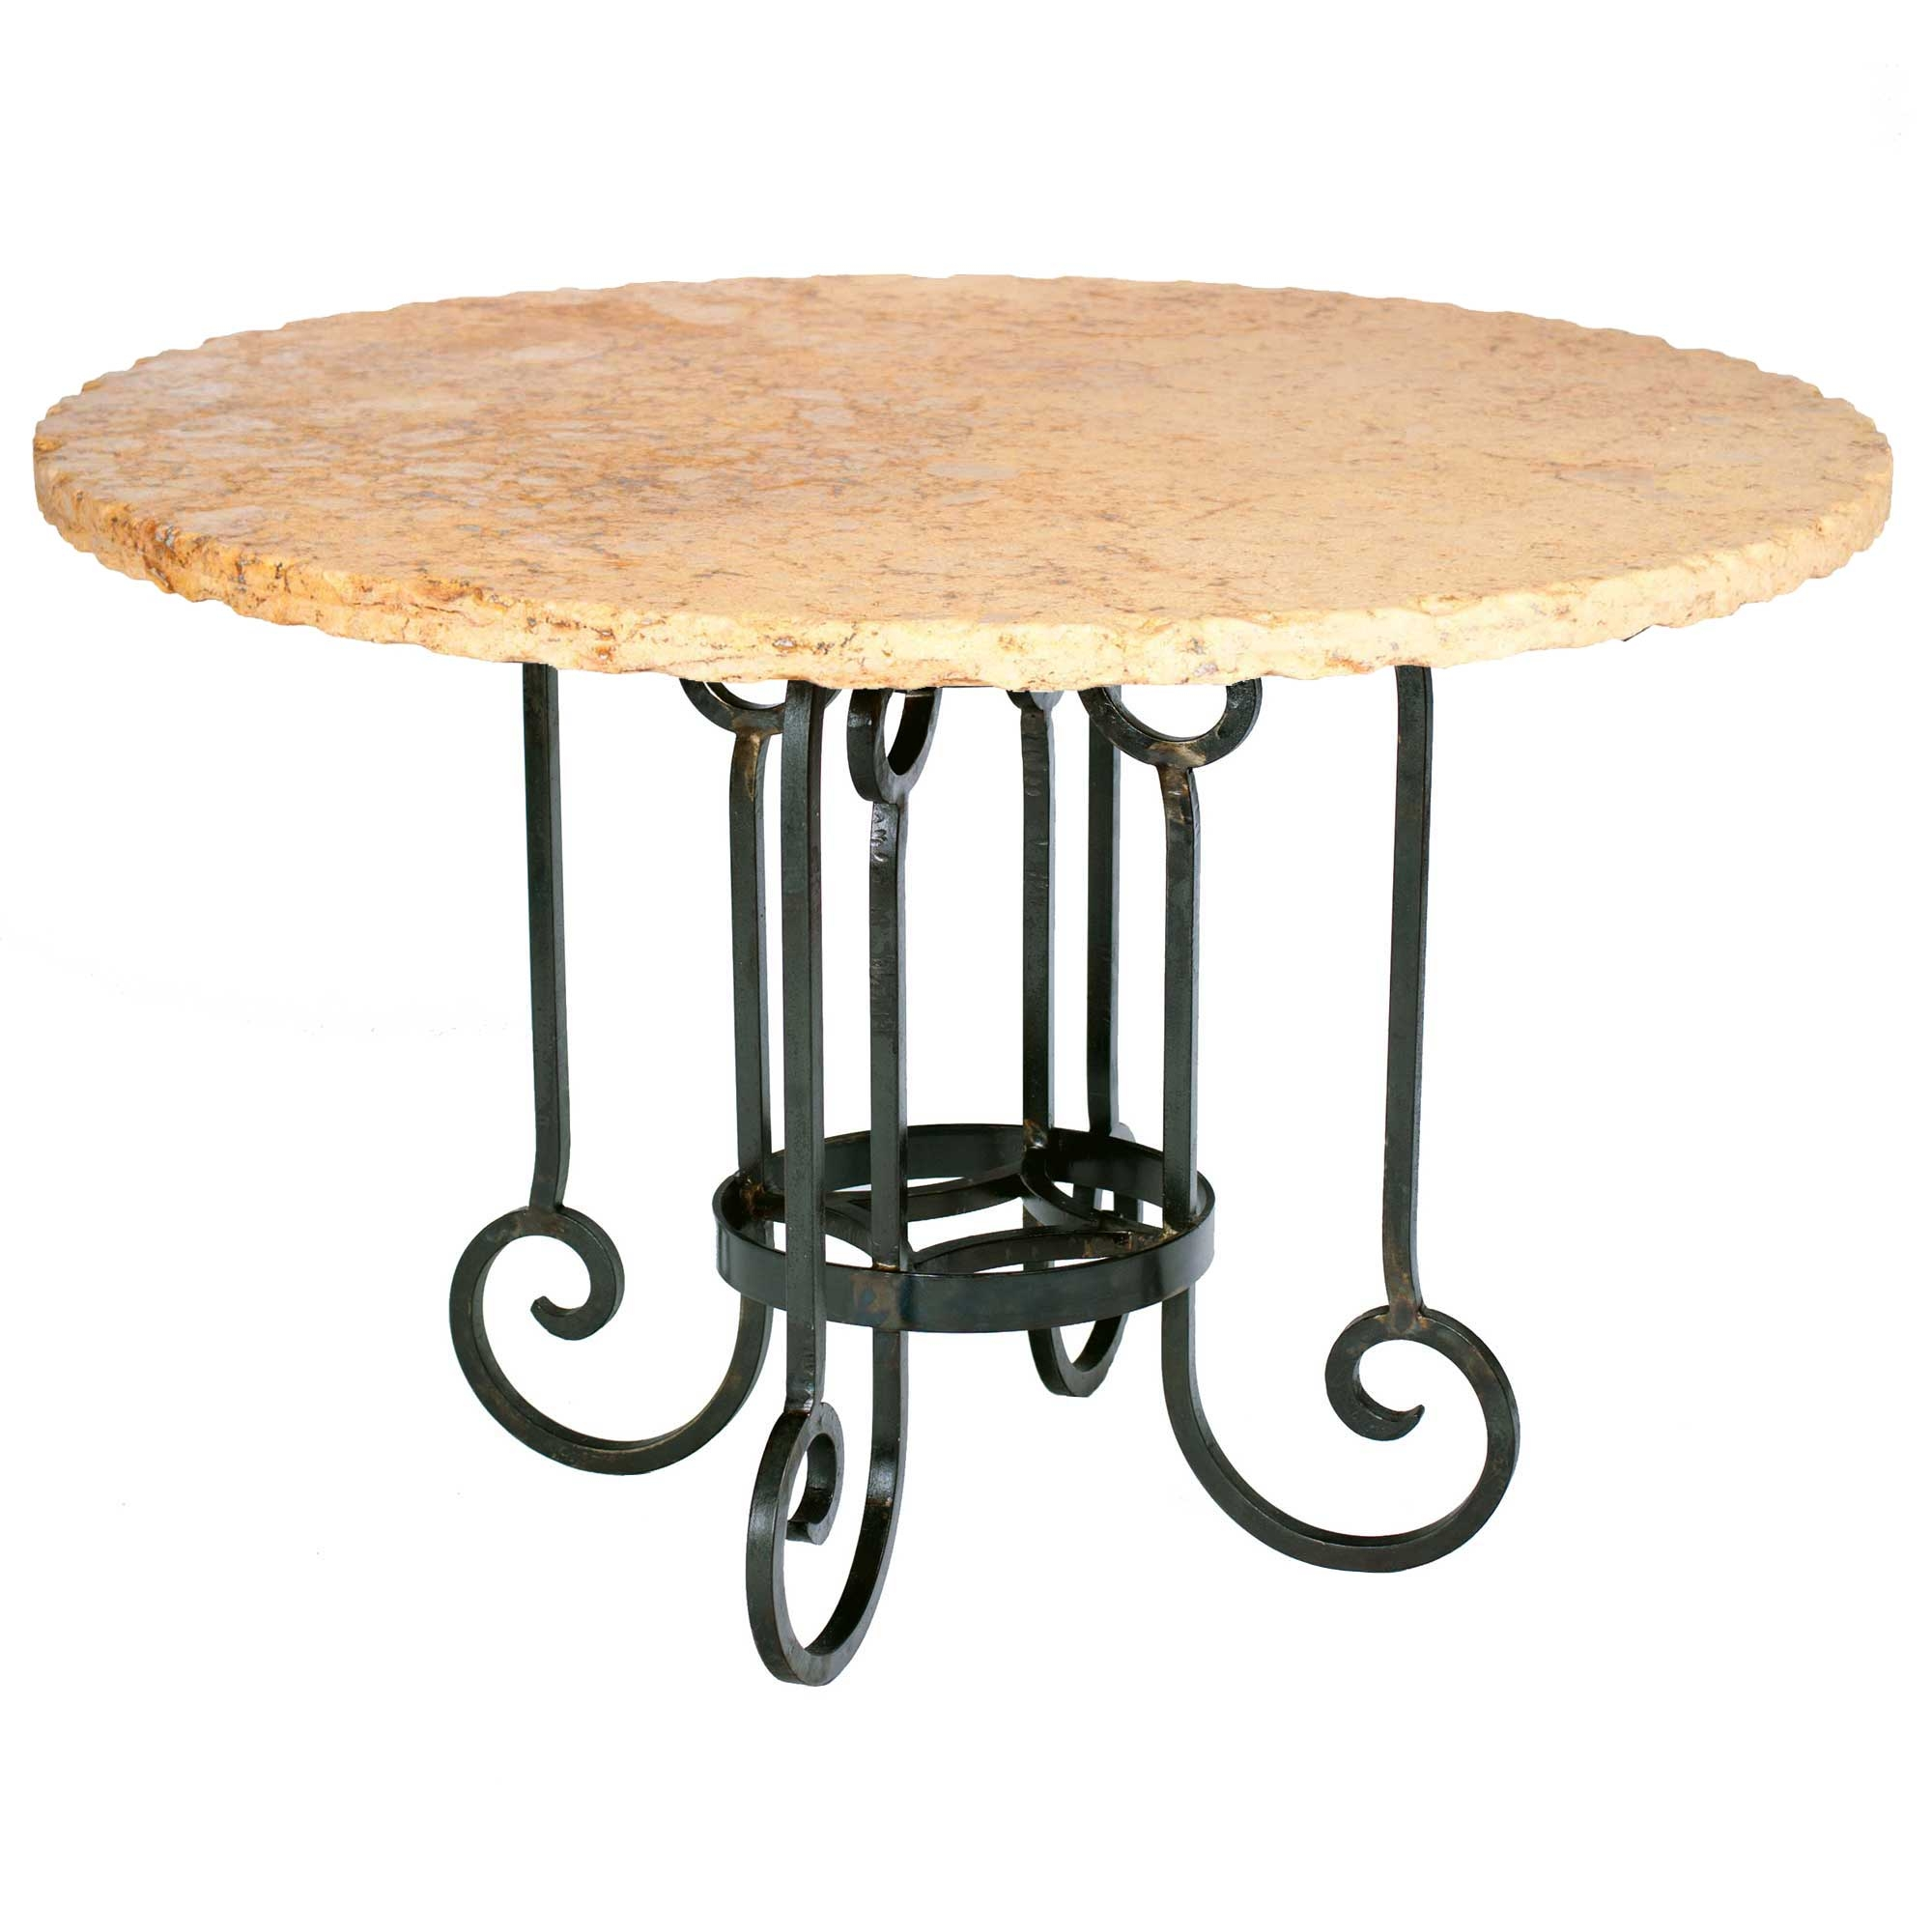 Curled Leg Iron Dining Table With 60 Round Marble Top